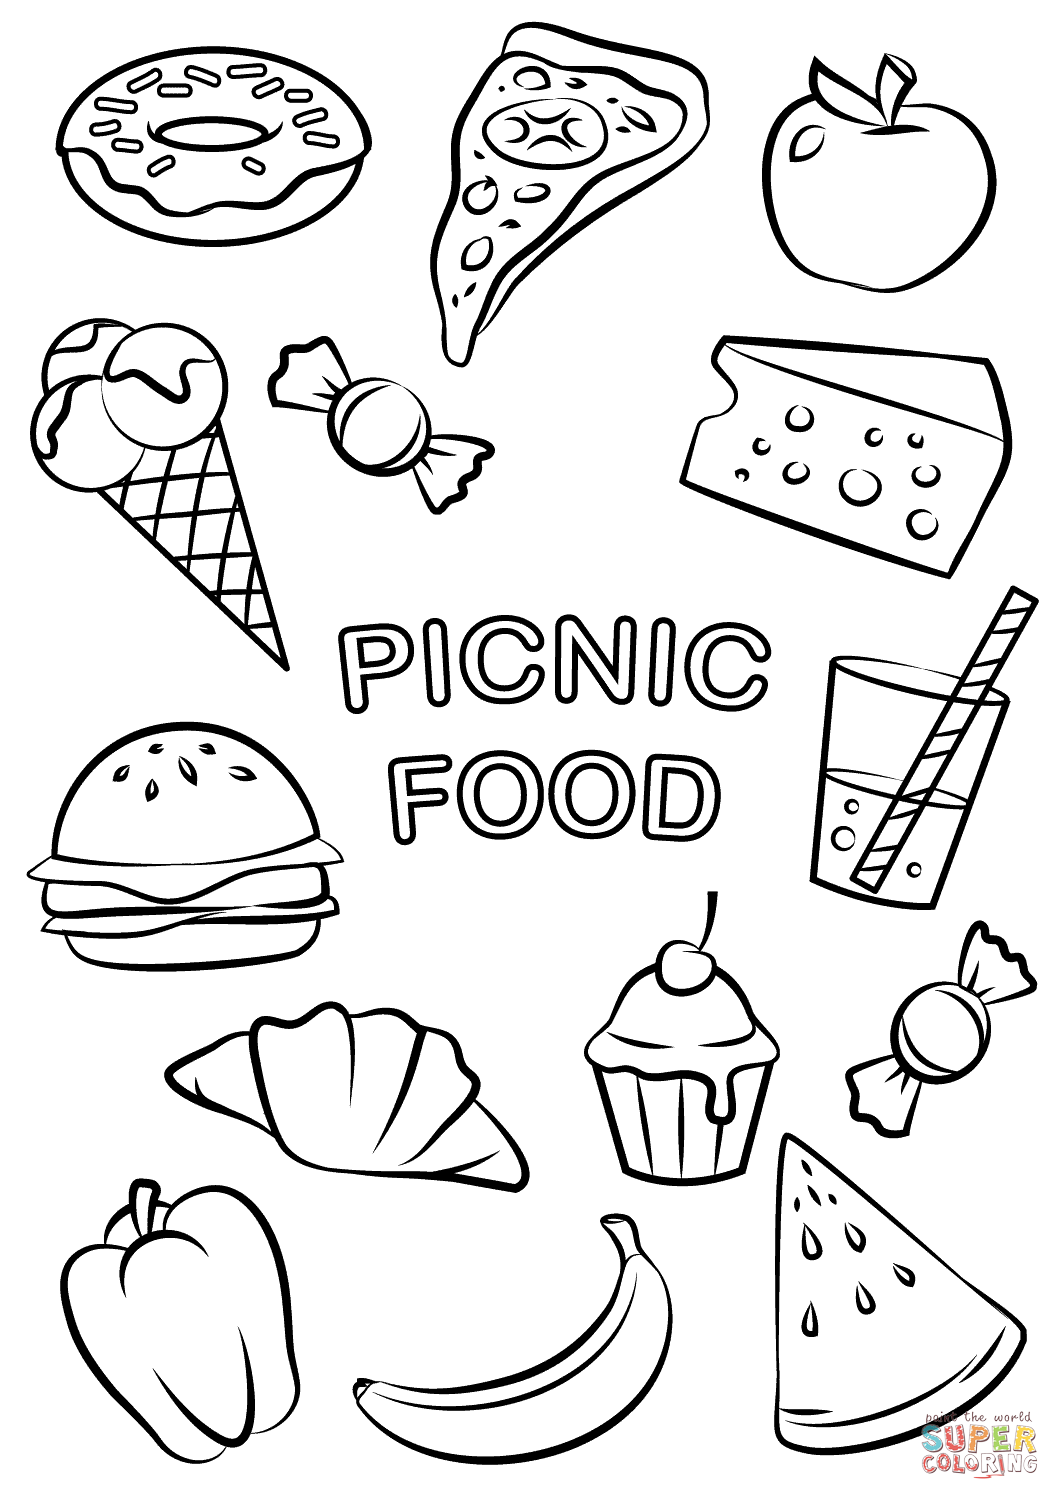 Fast Food Coloring Pages : coloring, pages, Picnic, Coloring, Printable, Pages